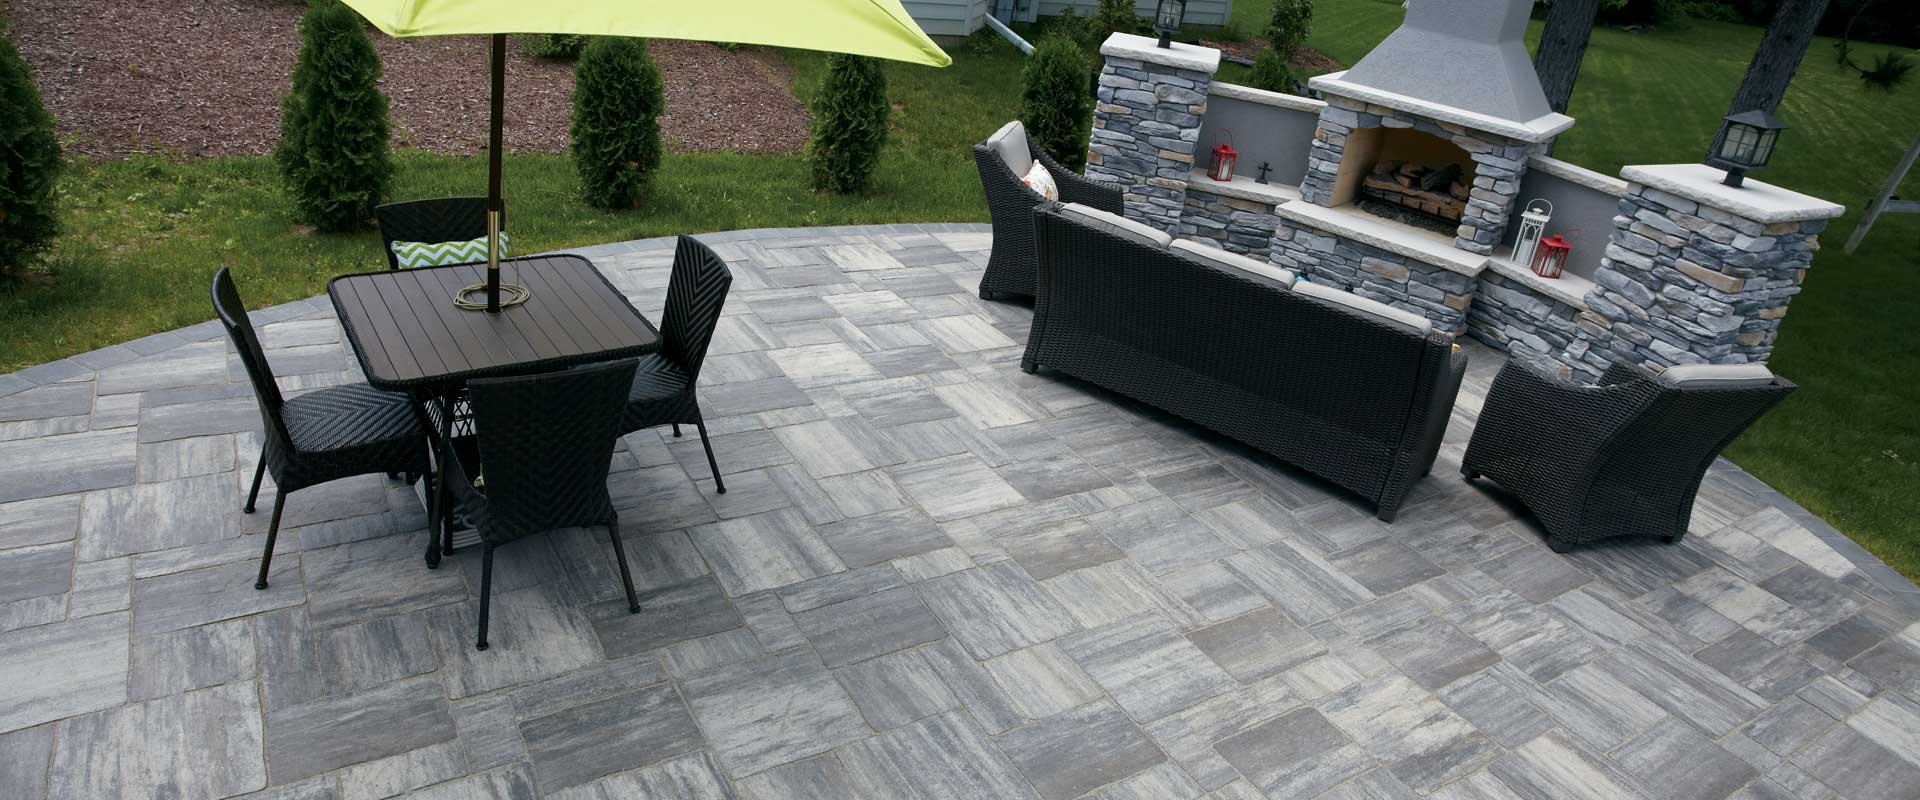 pavers u0026 patio stones UZYGJBE